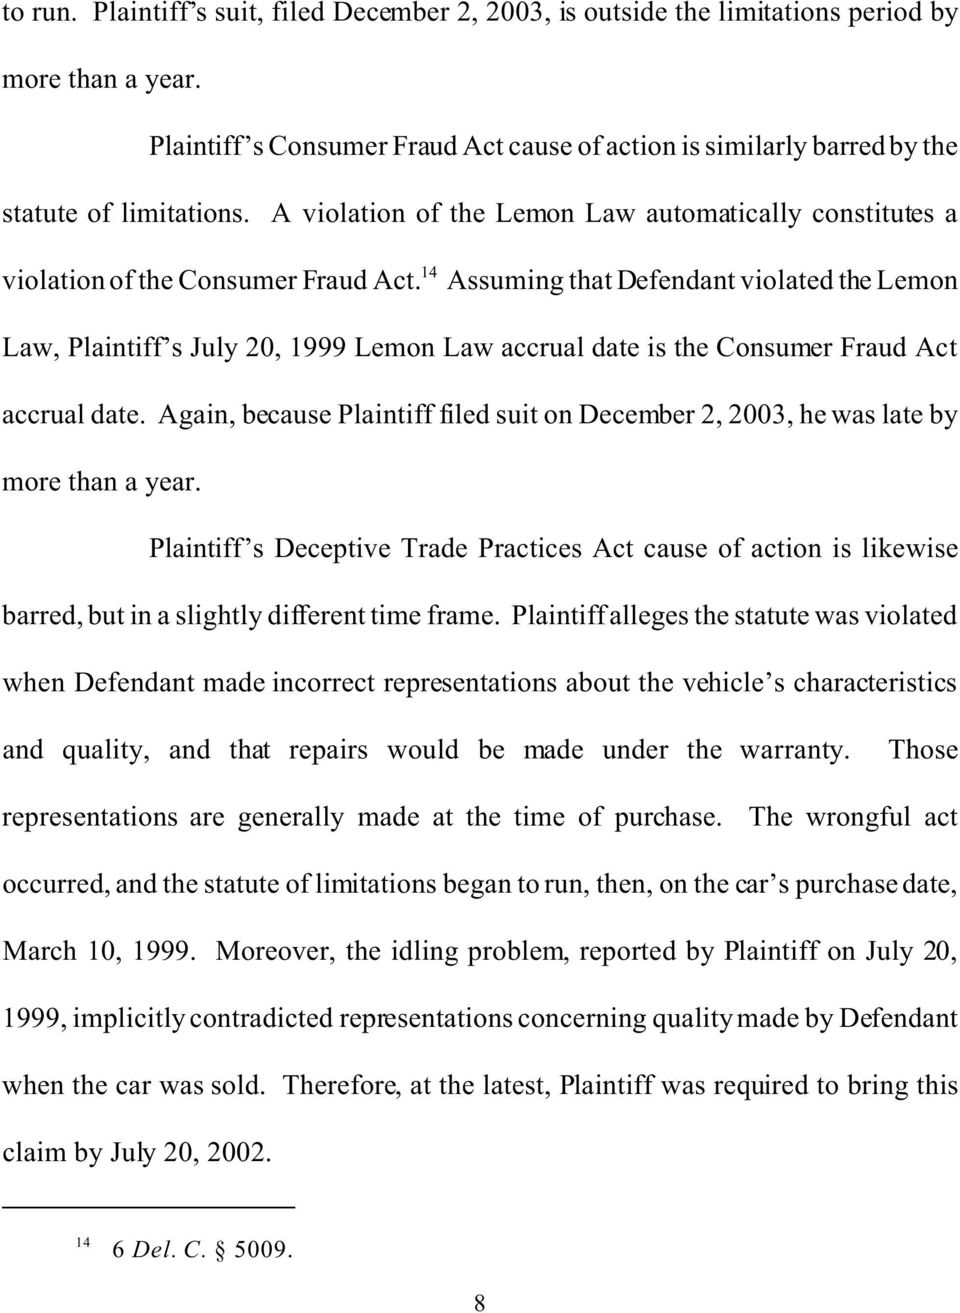 14 Assuming that Defendant violated the Lemon Law, Plaintiff s July 20, 1999 Lemon Law accrual date is the Consumer Fraud Act accrual date.